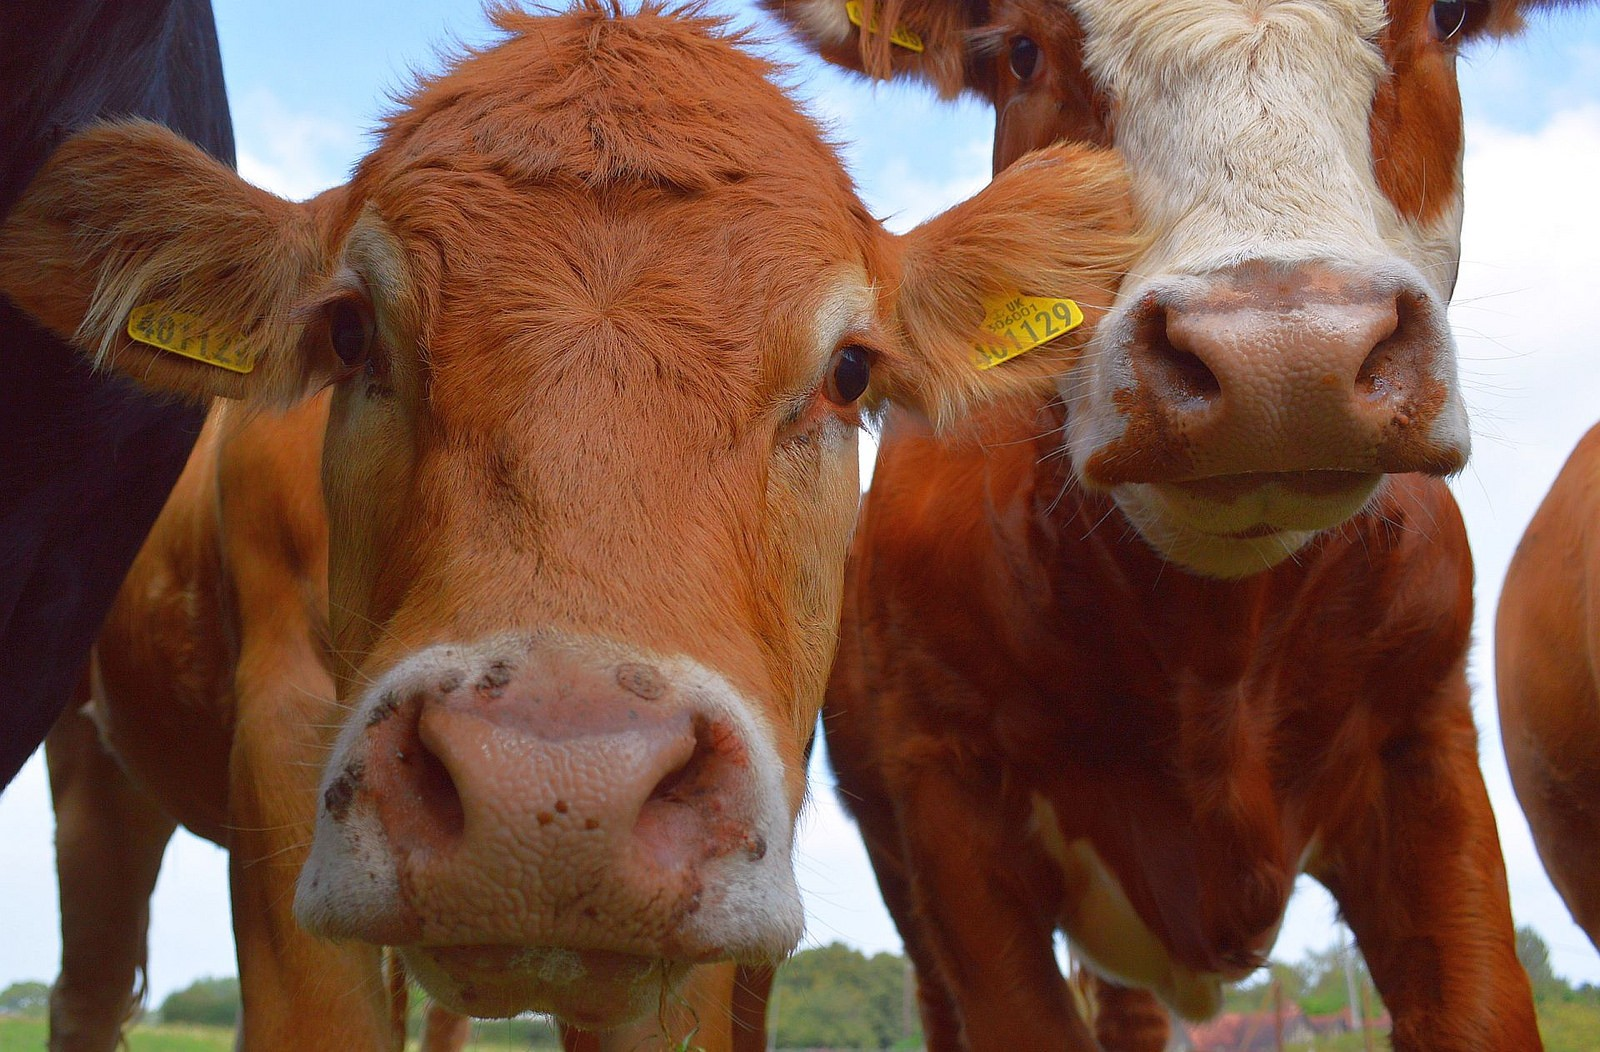 10 Insane Facts About Our Reliance on Cows